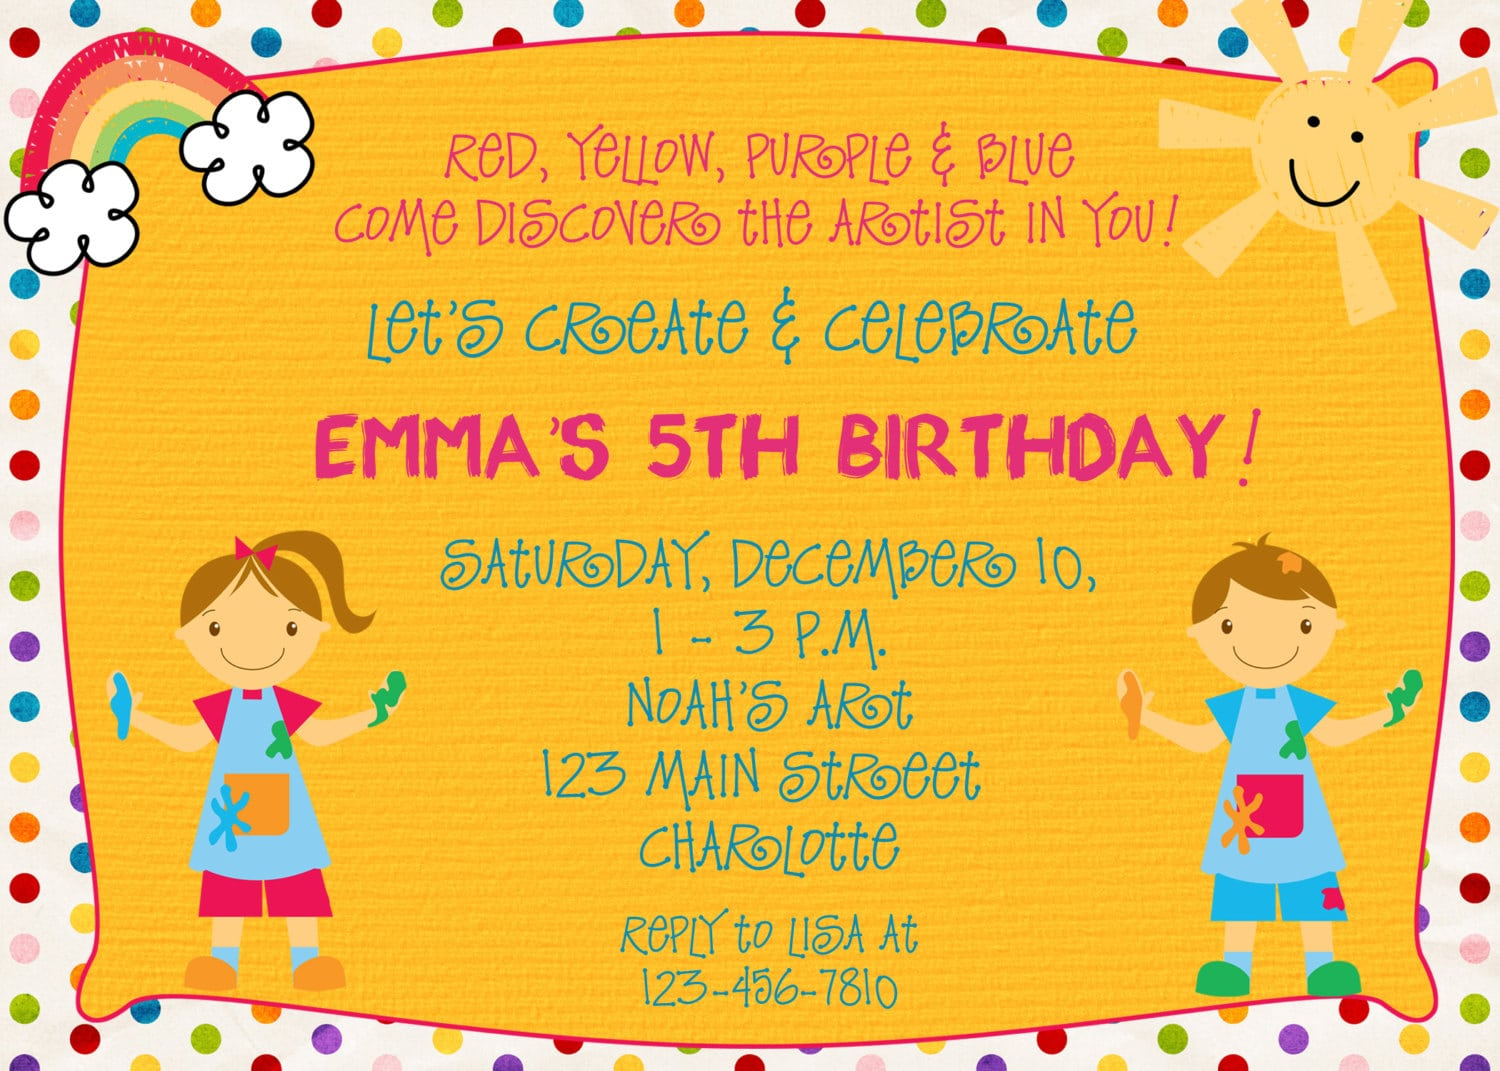 Paint Party Birthday Invitation Art Party Arts And Crafts